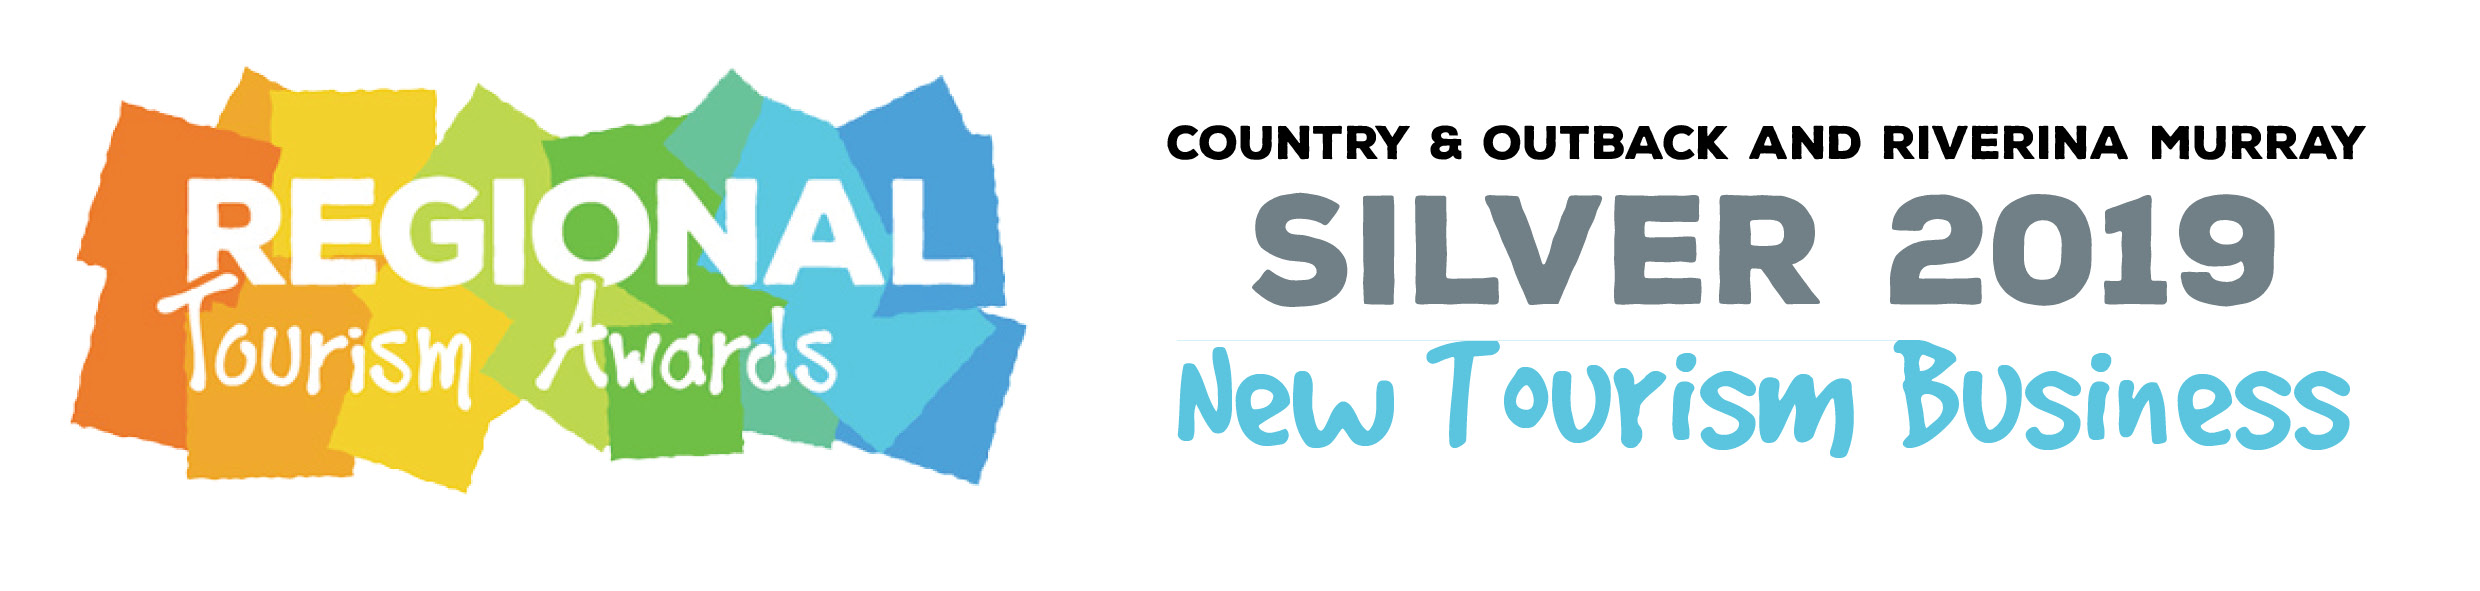 2019 Regional Tourism Awards - Silver - New Tourism Business